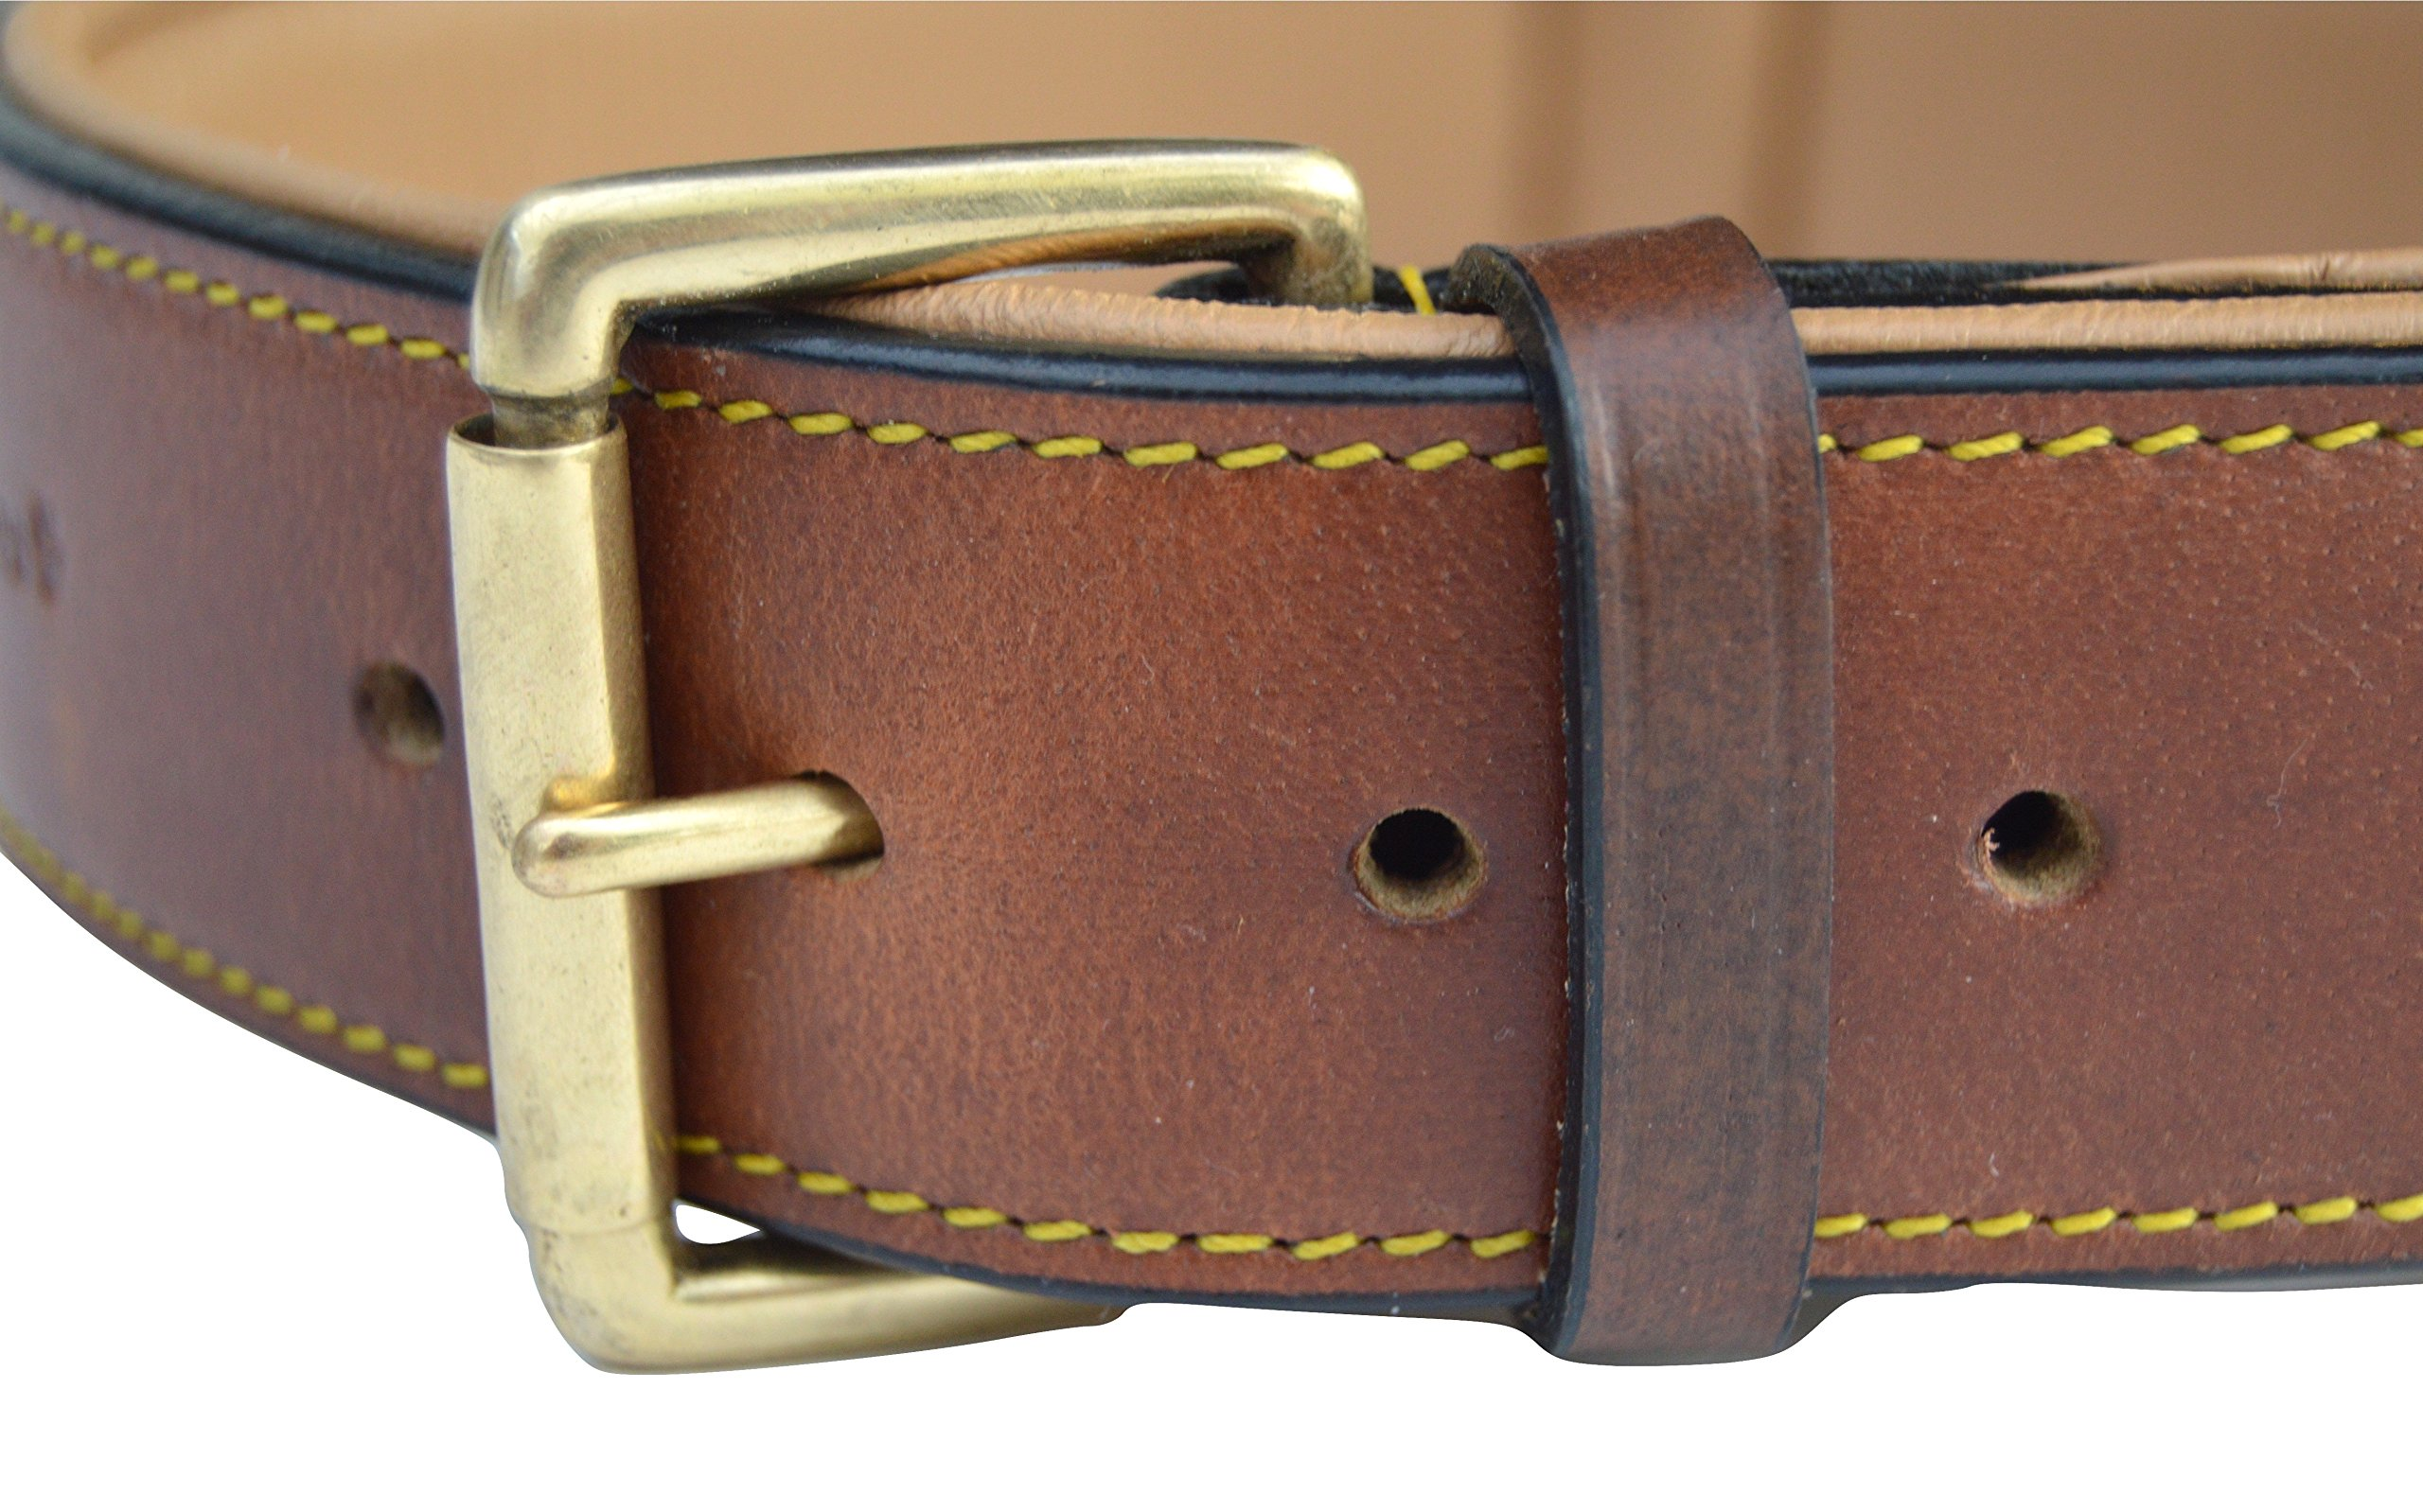 Soft Touch Collars Real Leather Padded Dog Collar, XL Brown, 28'' Inches Long x 1.75'' Inches Wide, Neck Size 22'' to 25'', Full Grain Genuine Luxury Leather for XLarge Dogs by Soft Touch Collars (Image #3)